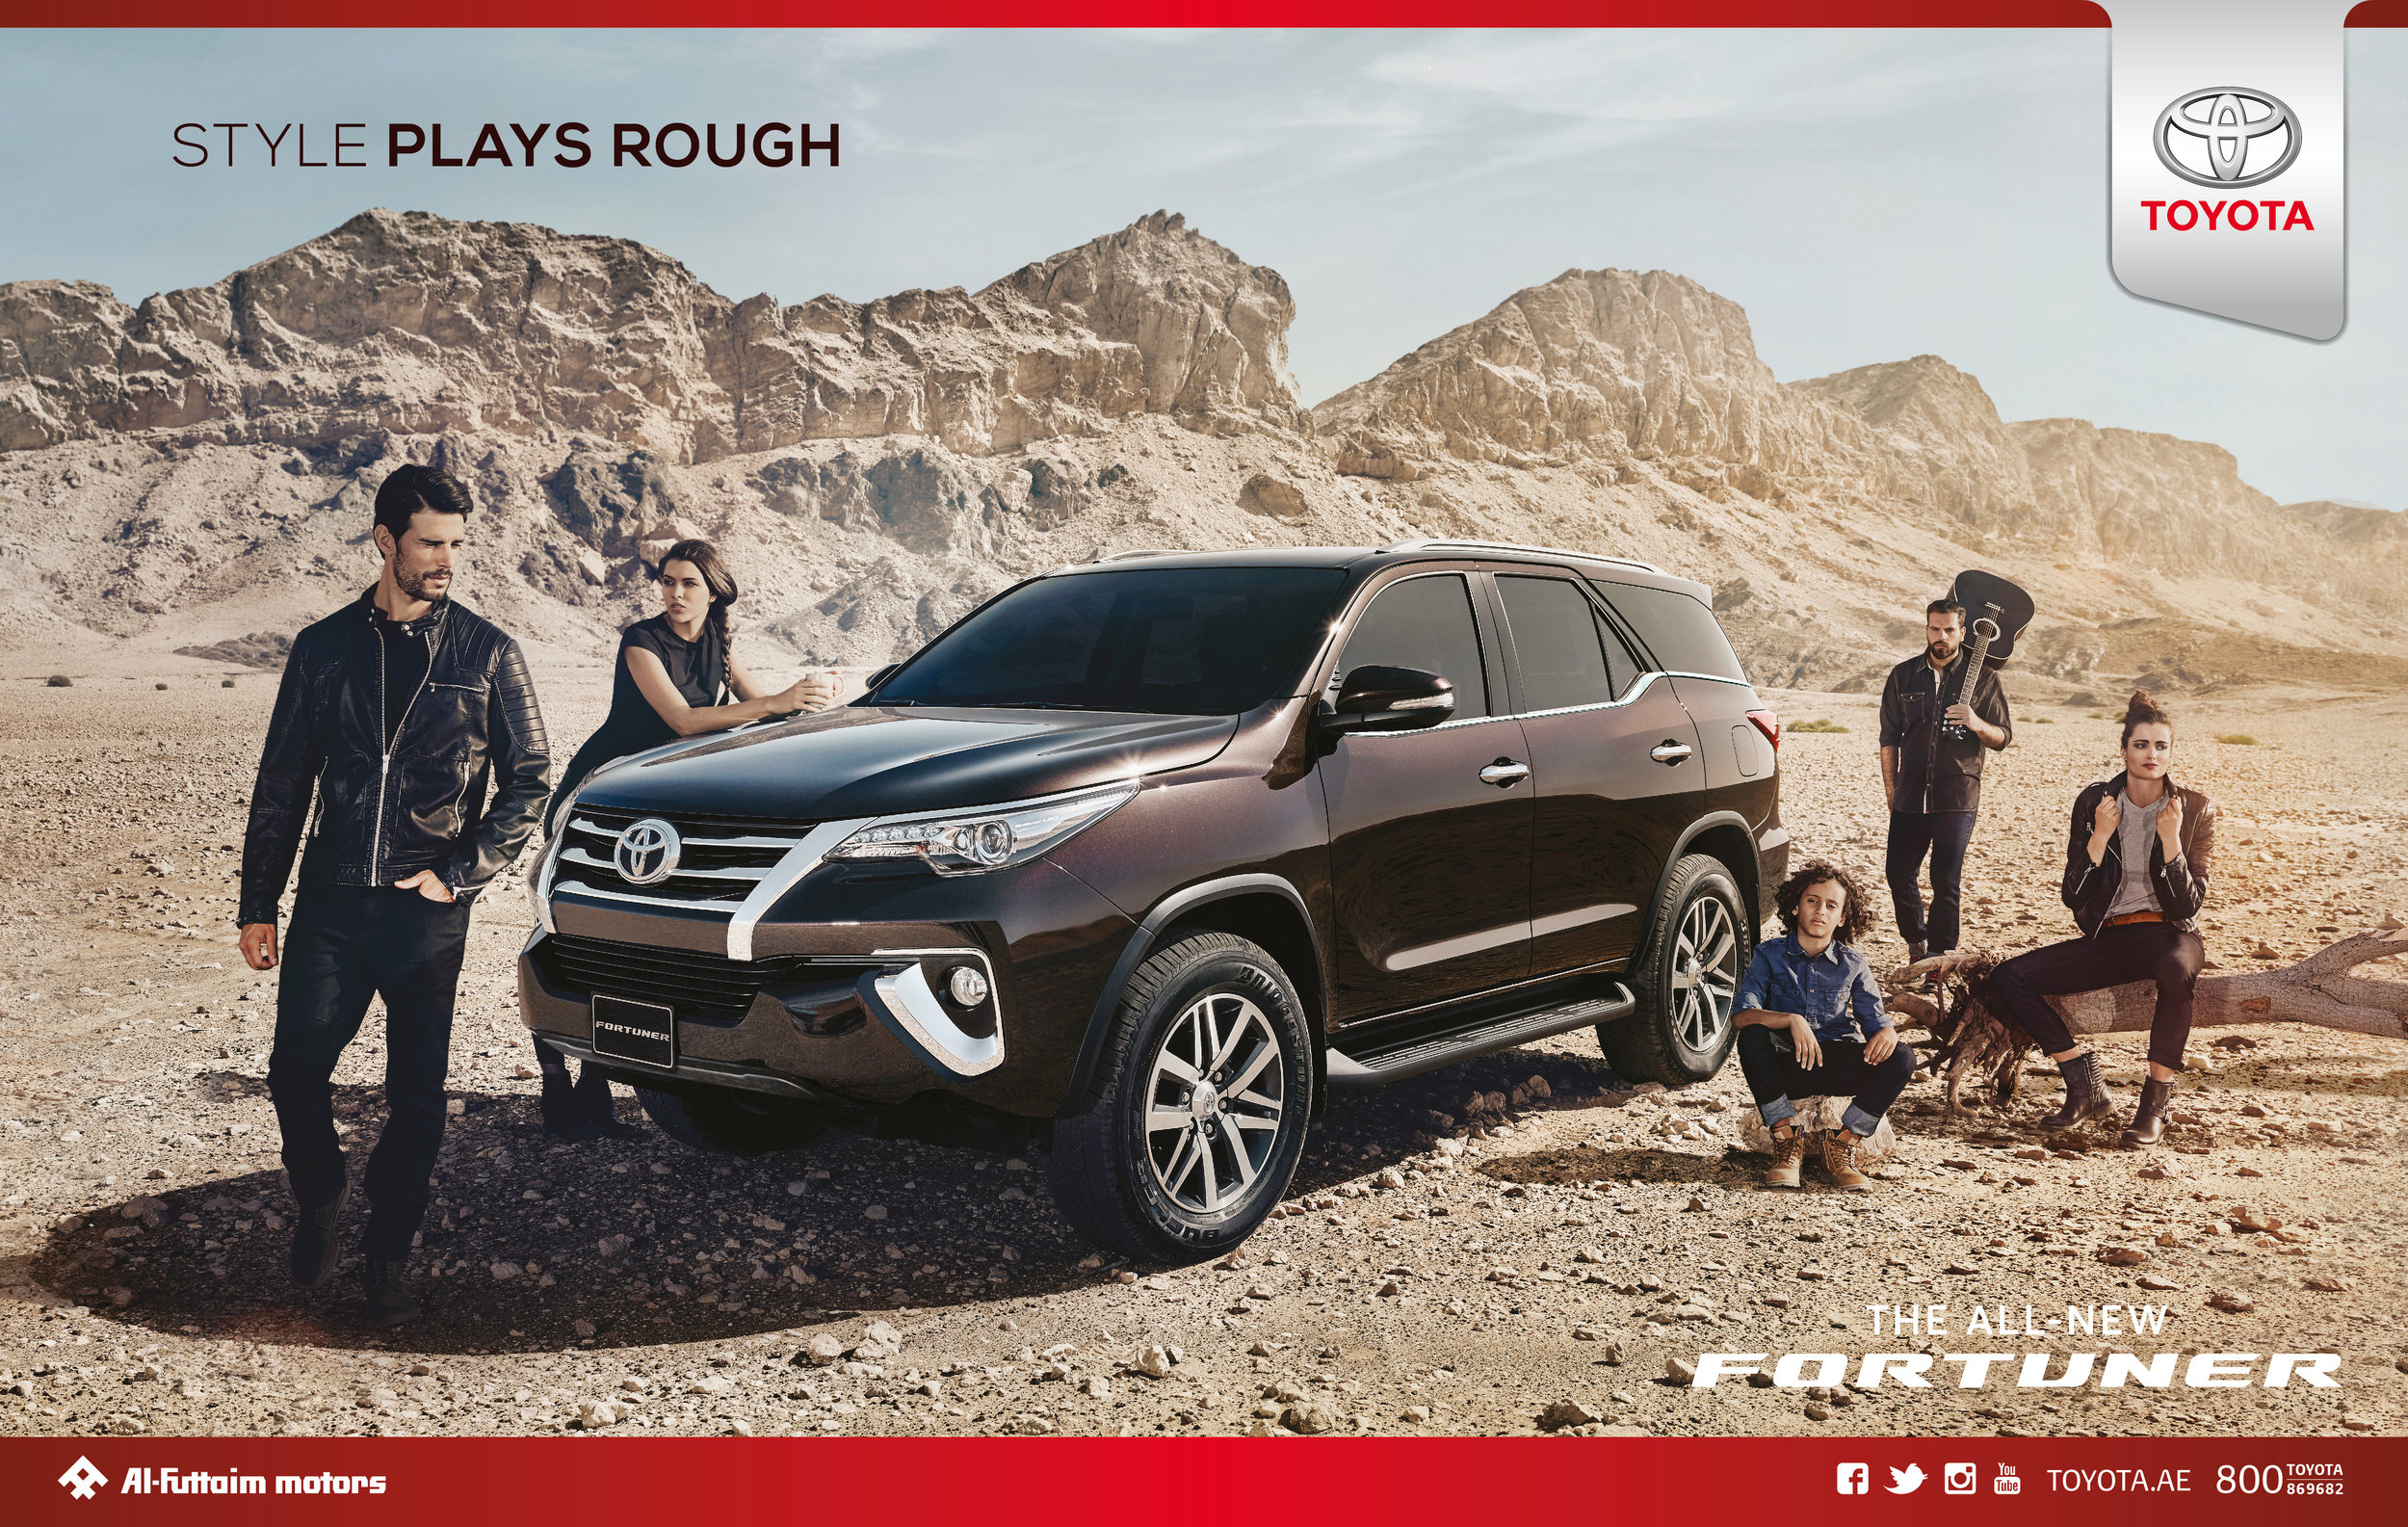 Toyota   Agency - GMASCO | Al Futtaim Motors  Photographer - Adam Browning Hill |  Hywell Waters